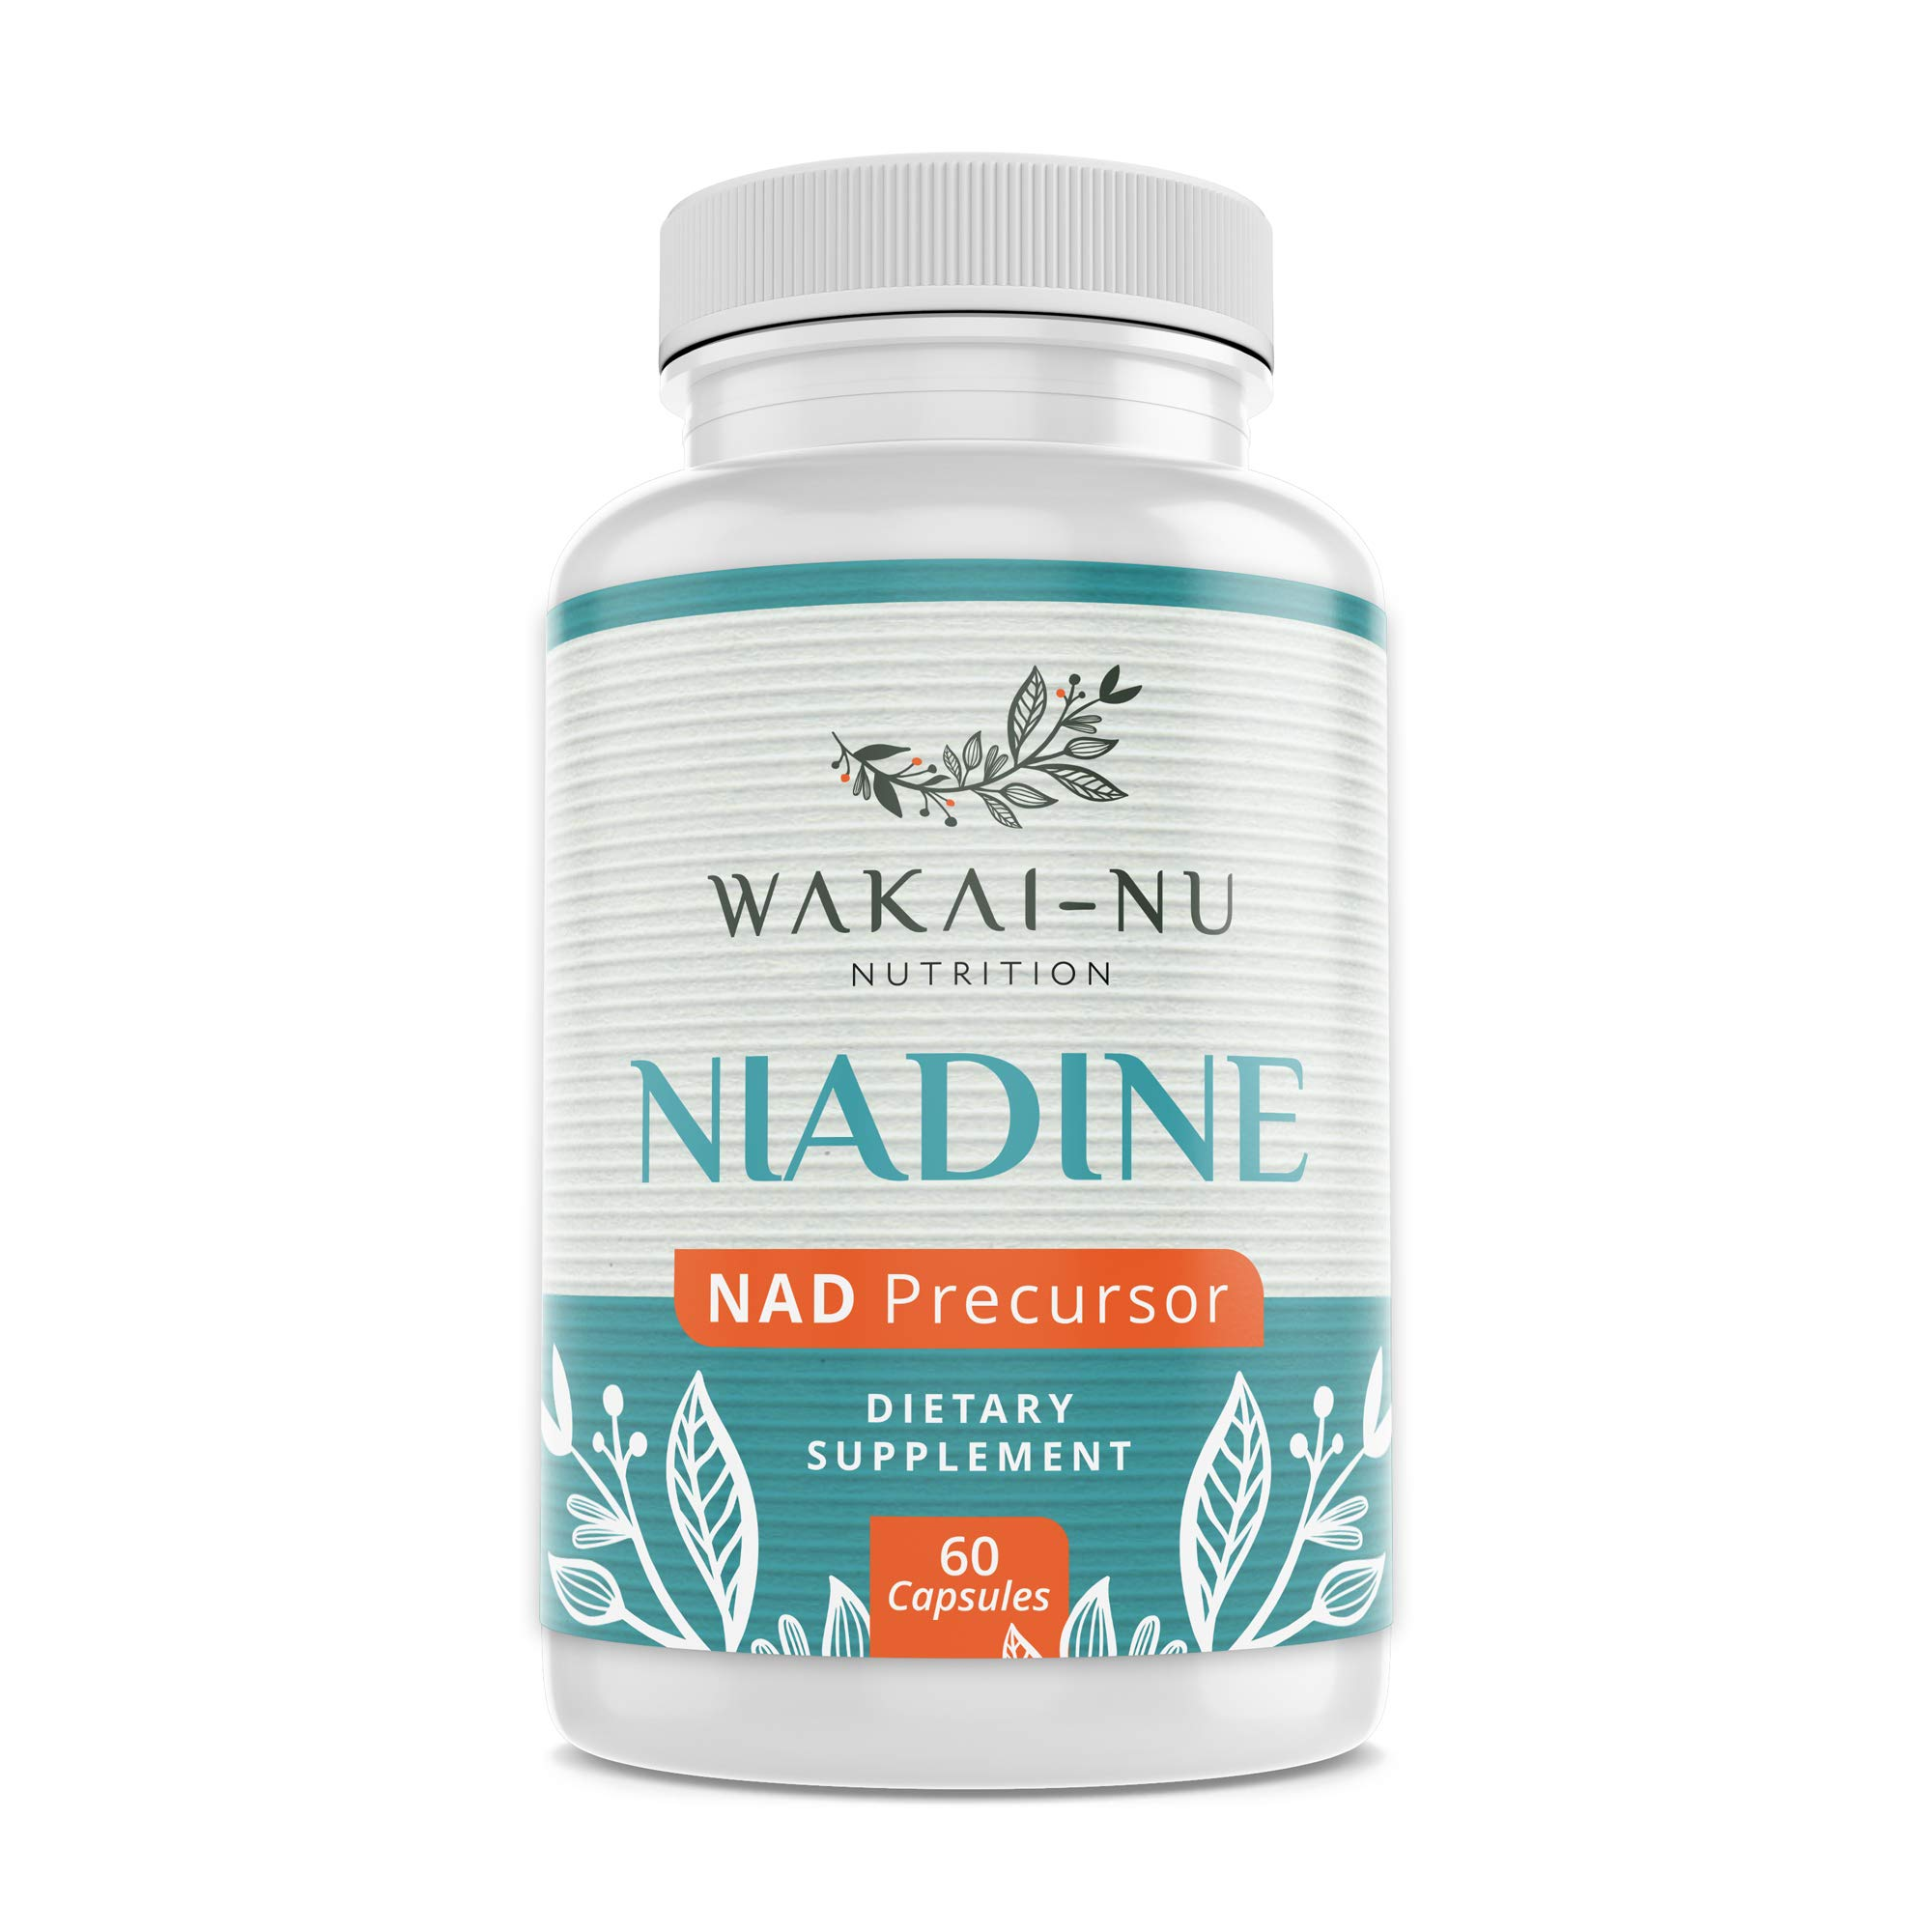 Wakai-Nu Niadine - 500 mg, 60 Capsules - Nicotinamide Adenine Dinucleotide Precursor Dietary Supplement - Advanced NAD+ Production Booster That Naturally Promotes Healthy Aging & Cellular Repair by Wakai-Nu